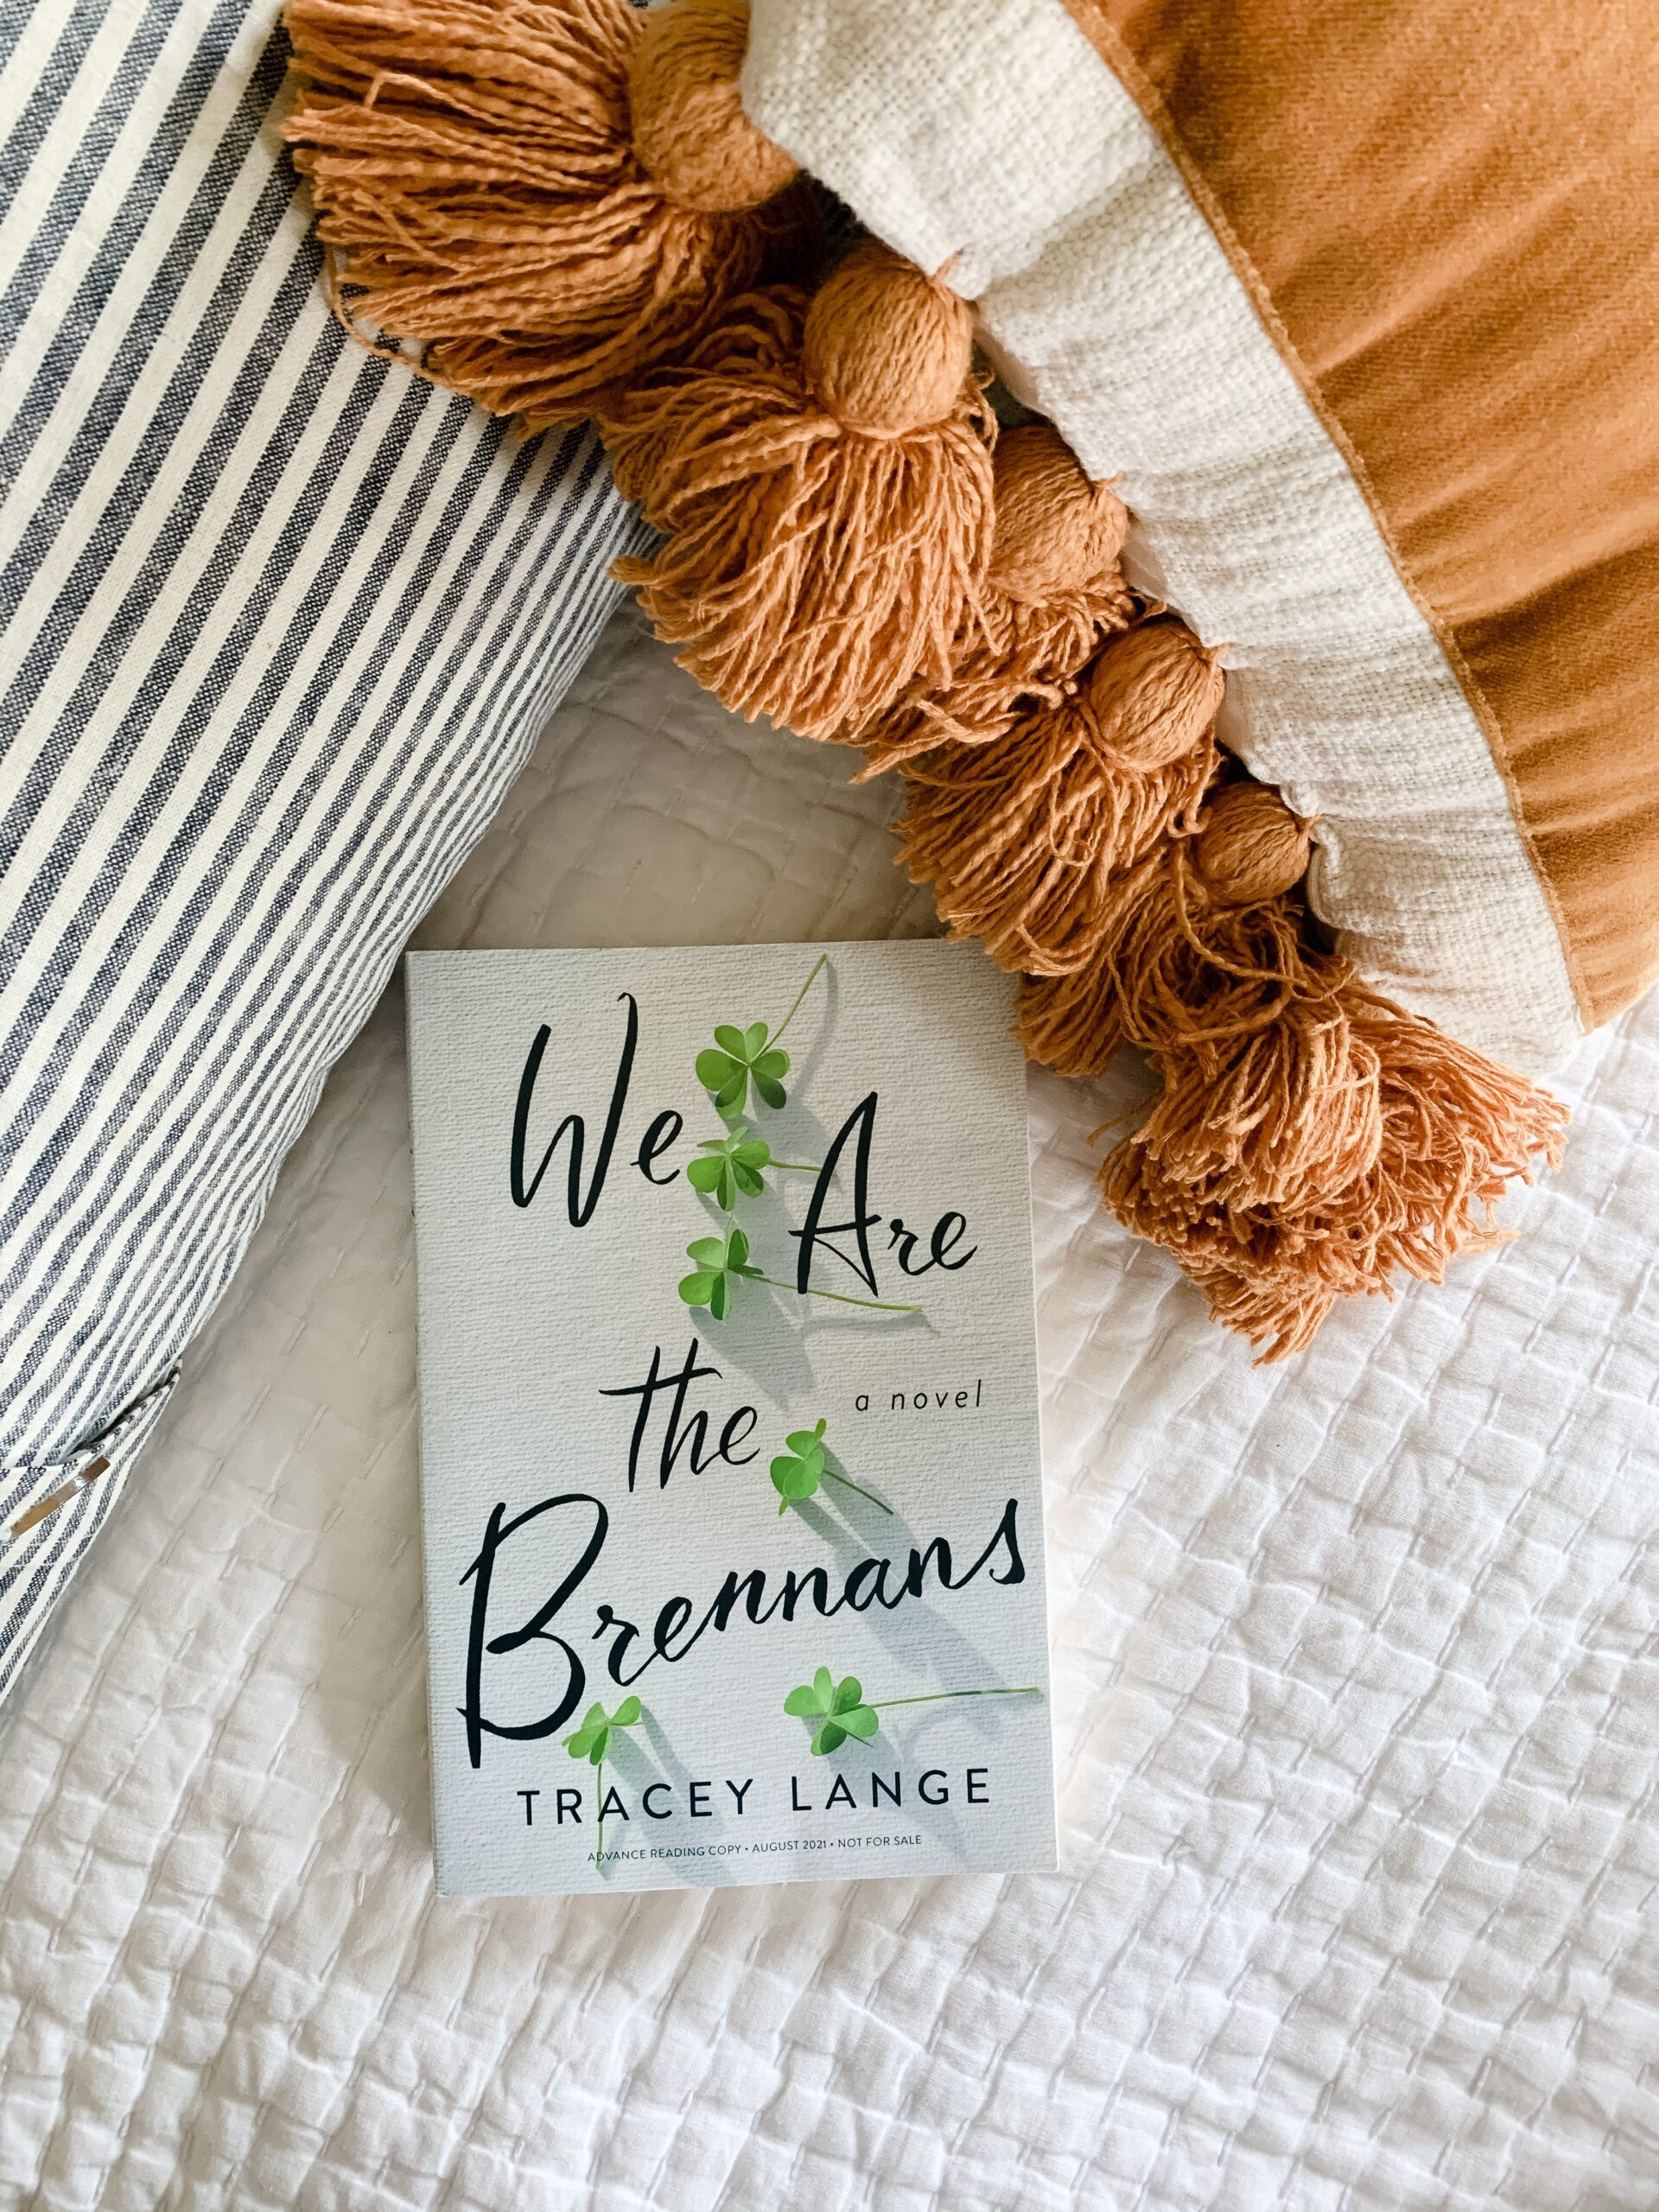 Image of We Are the Brennans novel by Tracey Lange on a bed surrounded by pillows.